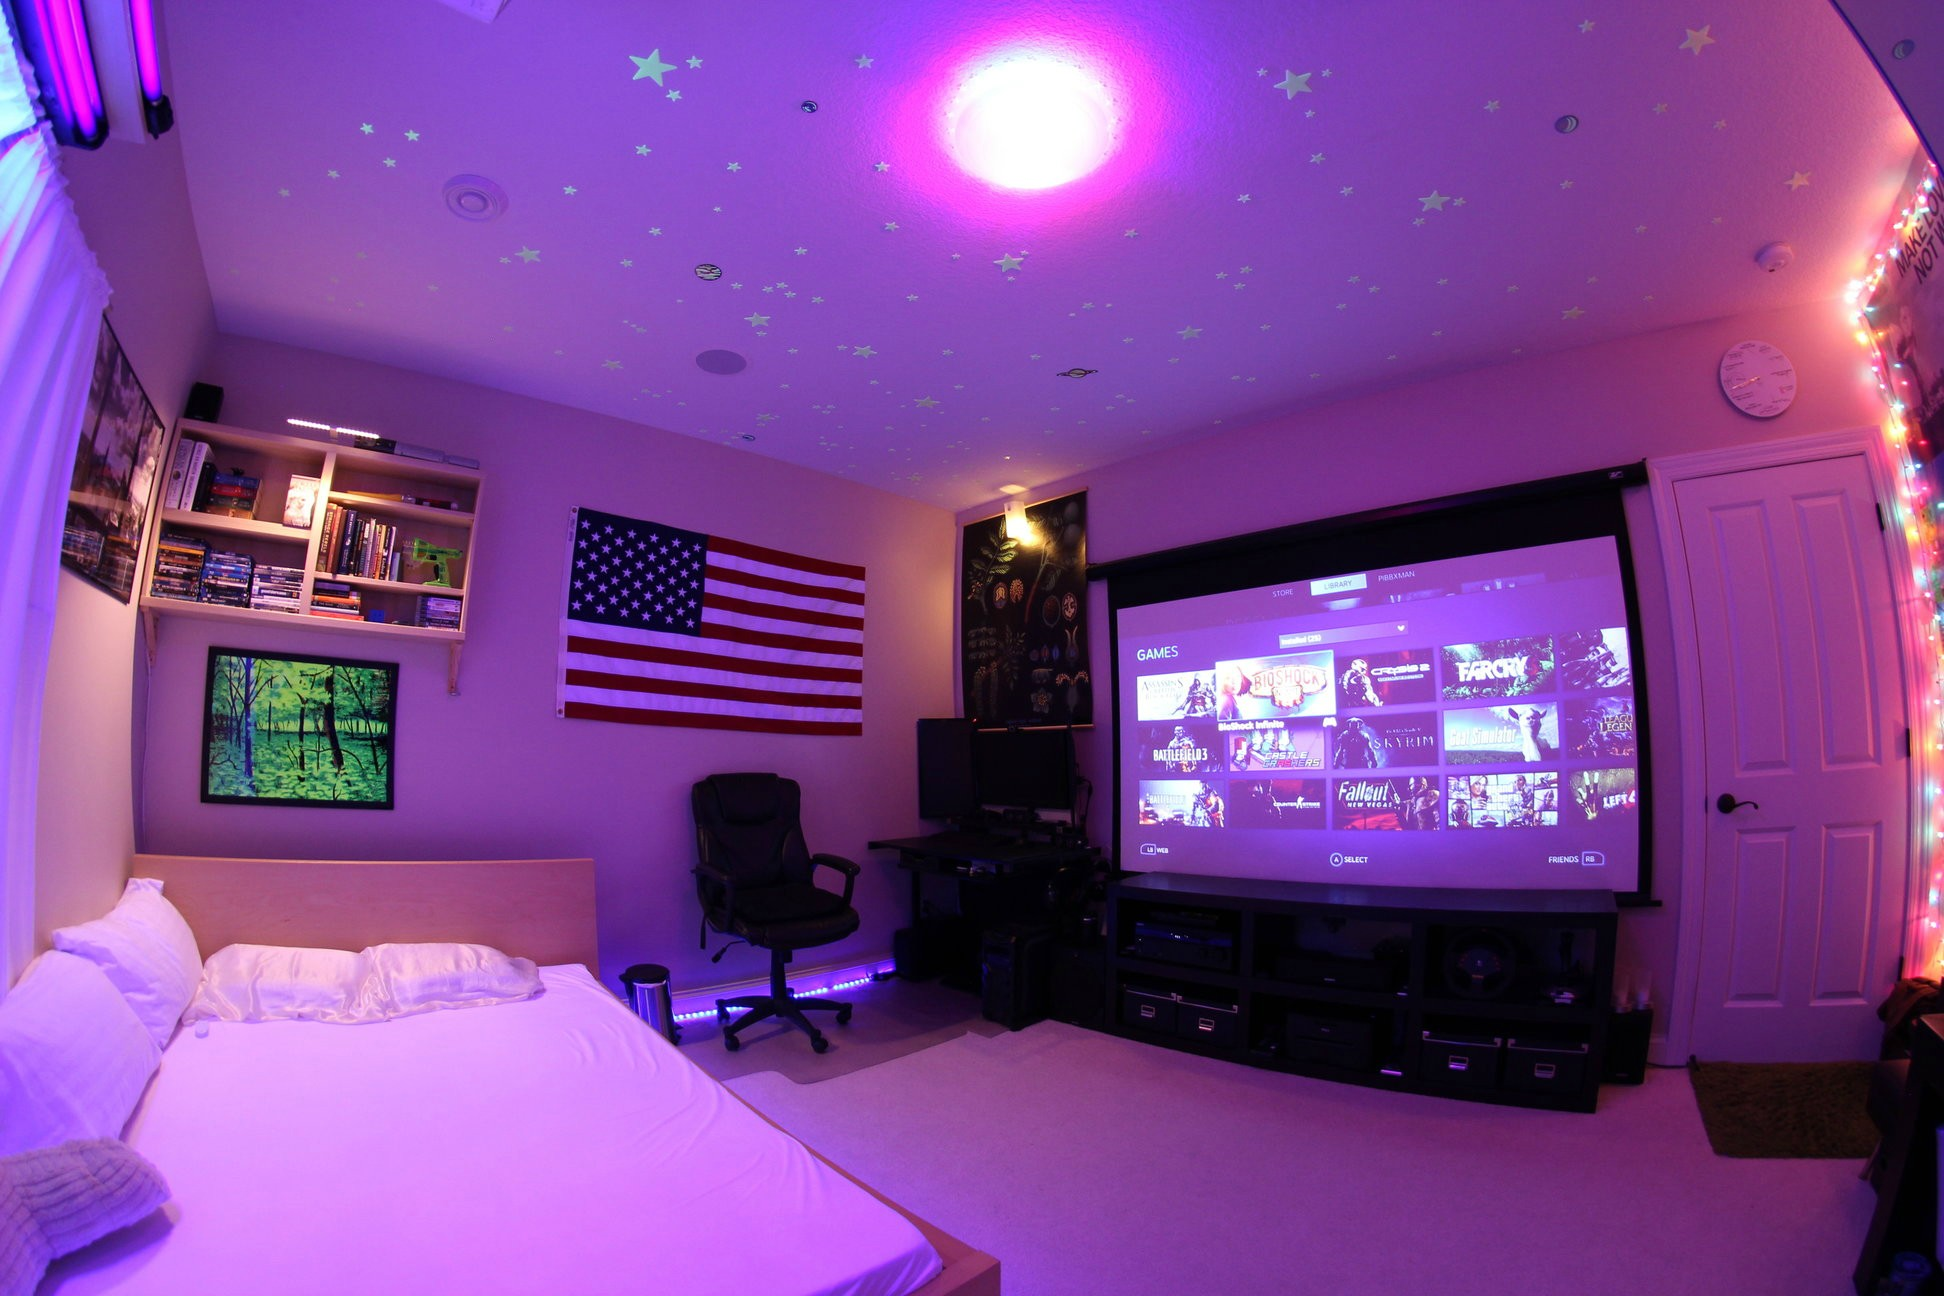 47 Epic Video Game Room Decoration Ideas For 2016